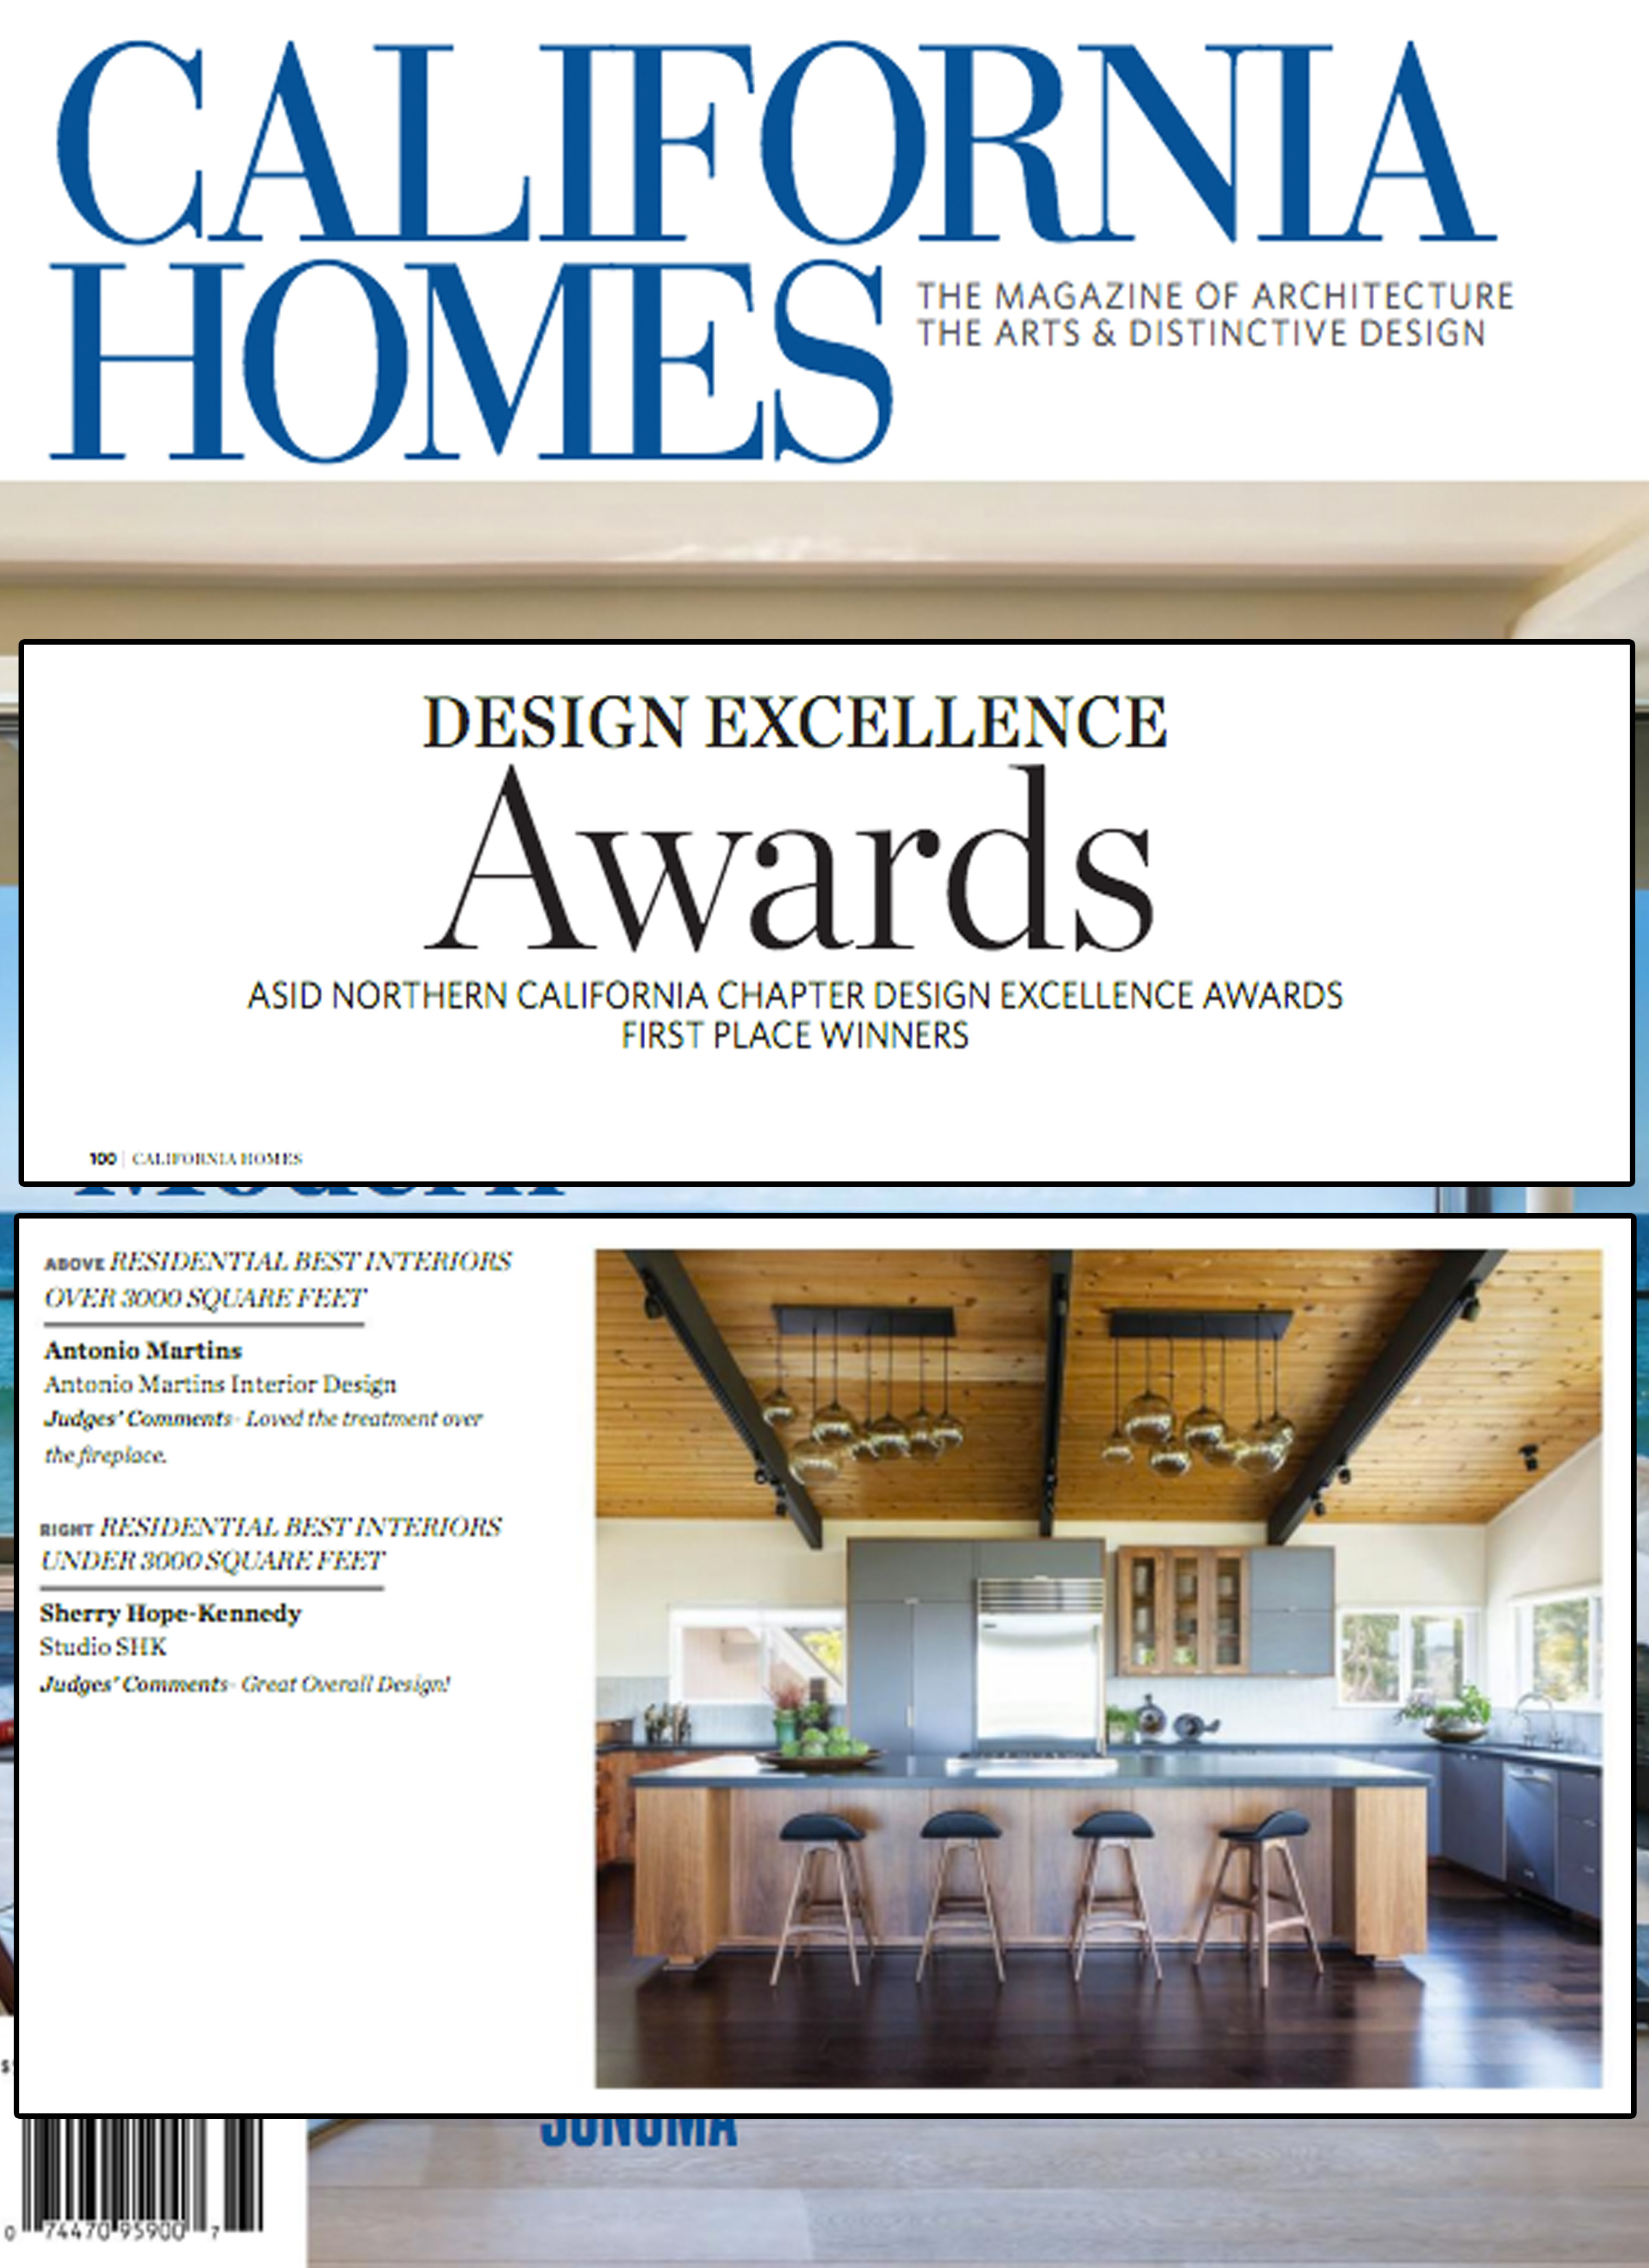 California Homes - Studio SHK's Modern Zen residence was profiled in the Winter 2015-16 edition of California Homes. The design won the ASID Northern Calif. Chapter Design Excellence Awards for Best Residential Interiors Under 3,000-SF.